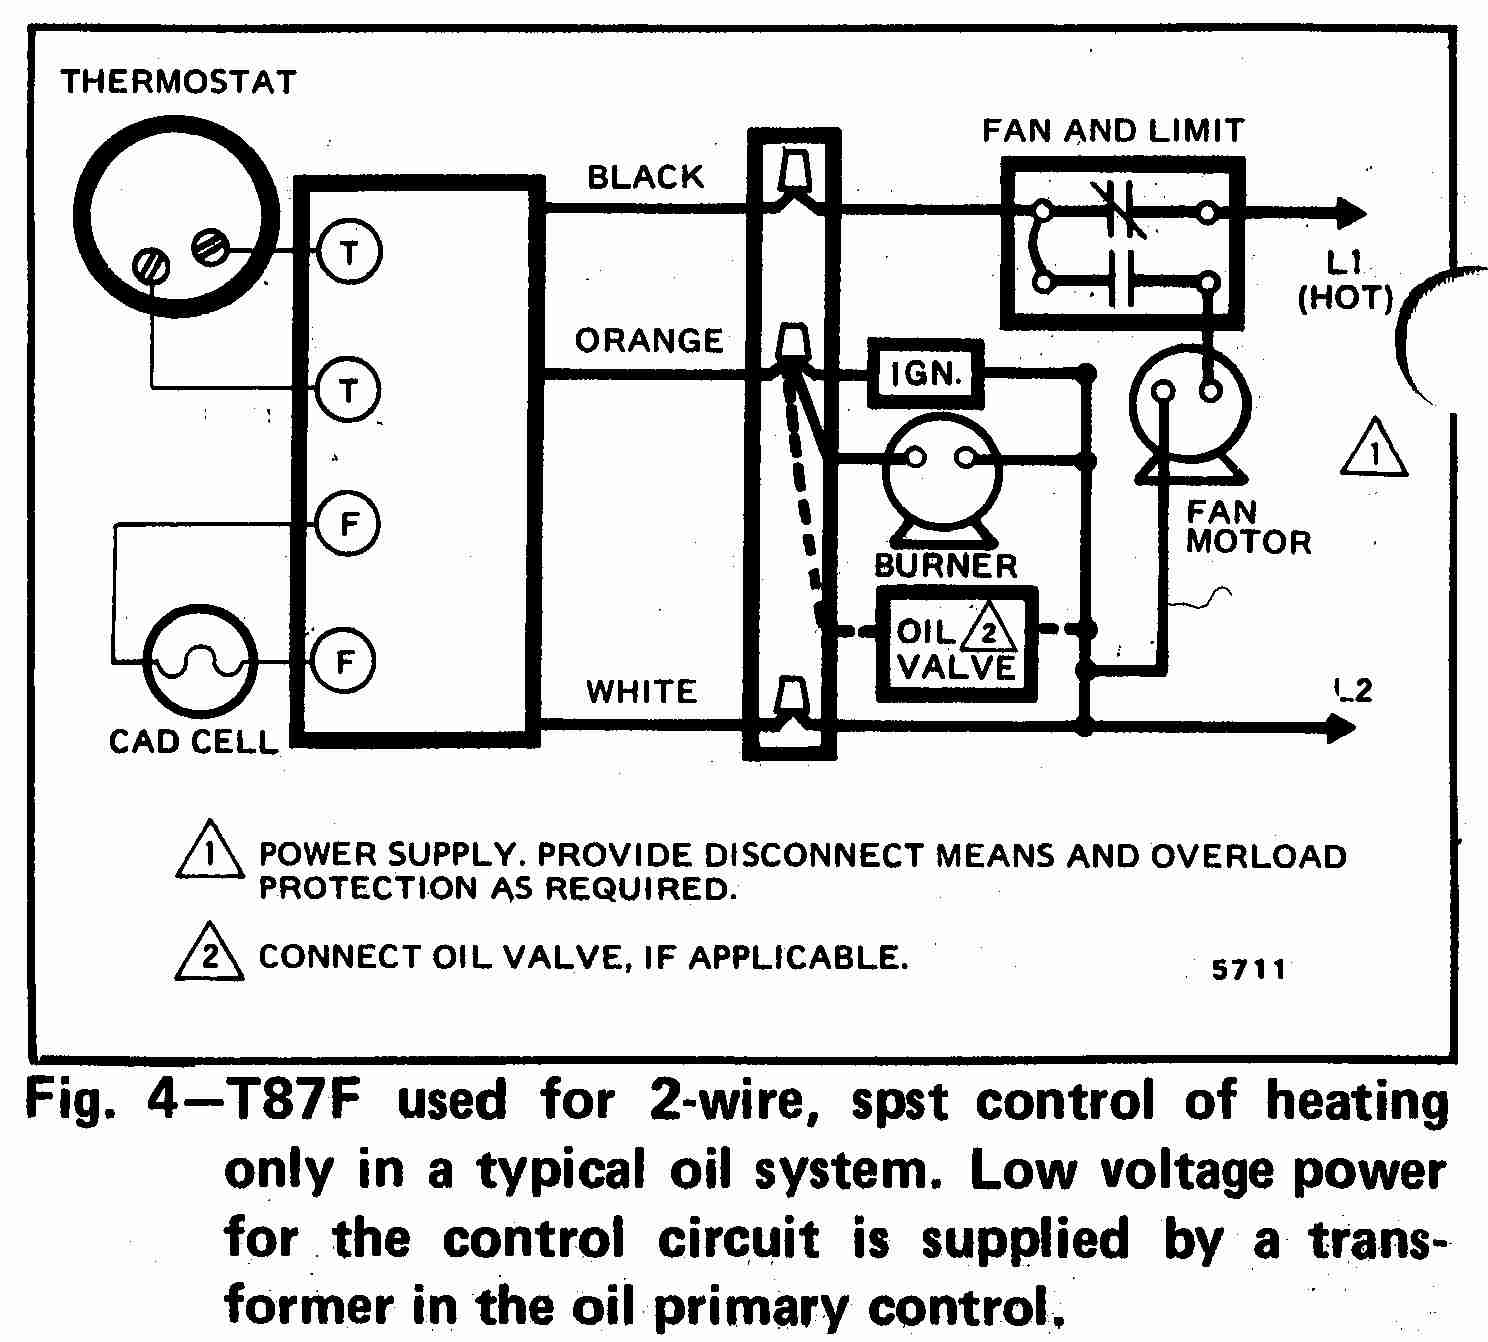 Room Thermostat Wiring Diagrams For Hvac Systems Images Of What Is The Diagram A Honeywell T87f 2 Wire Spst Control Heating Only In